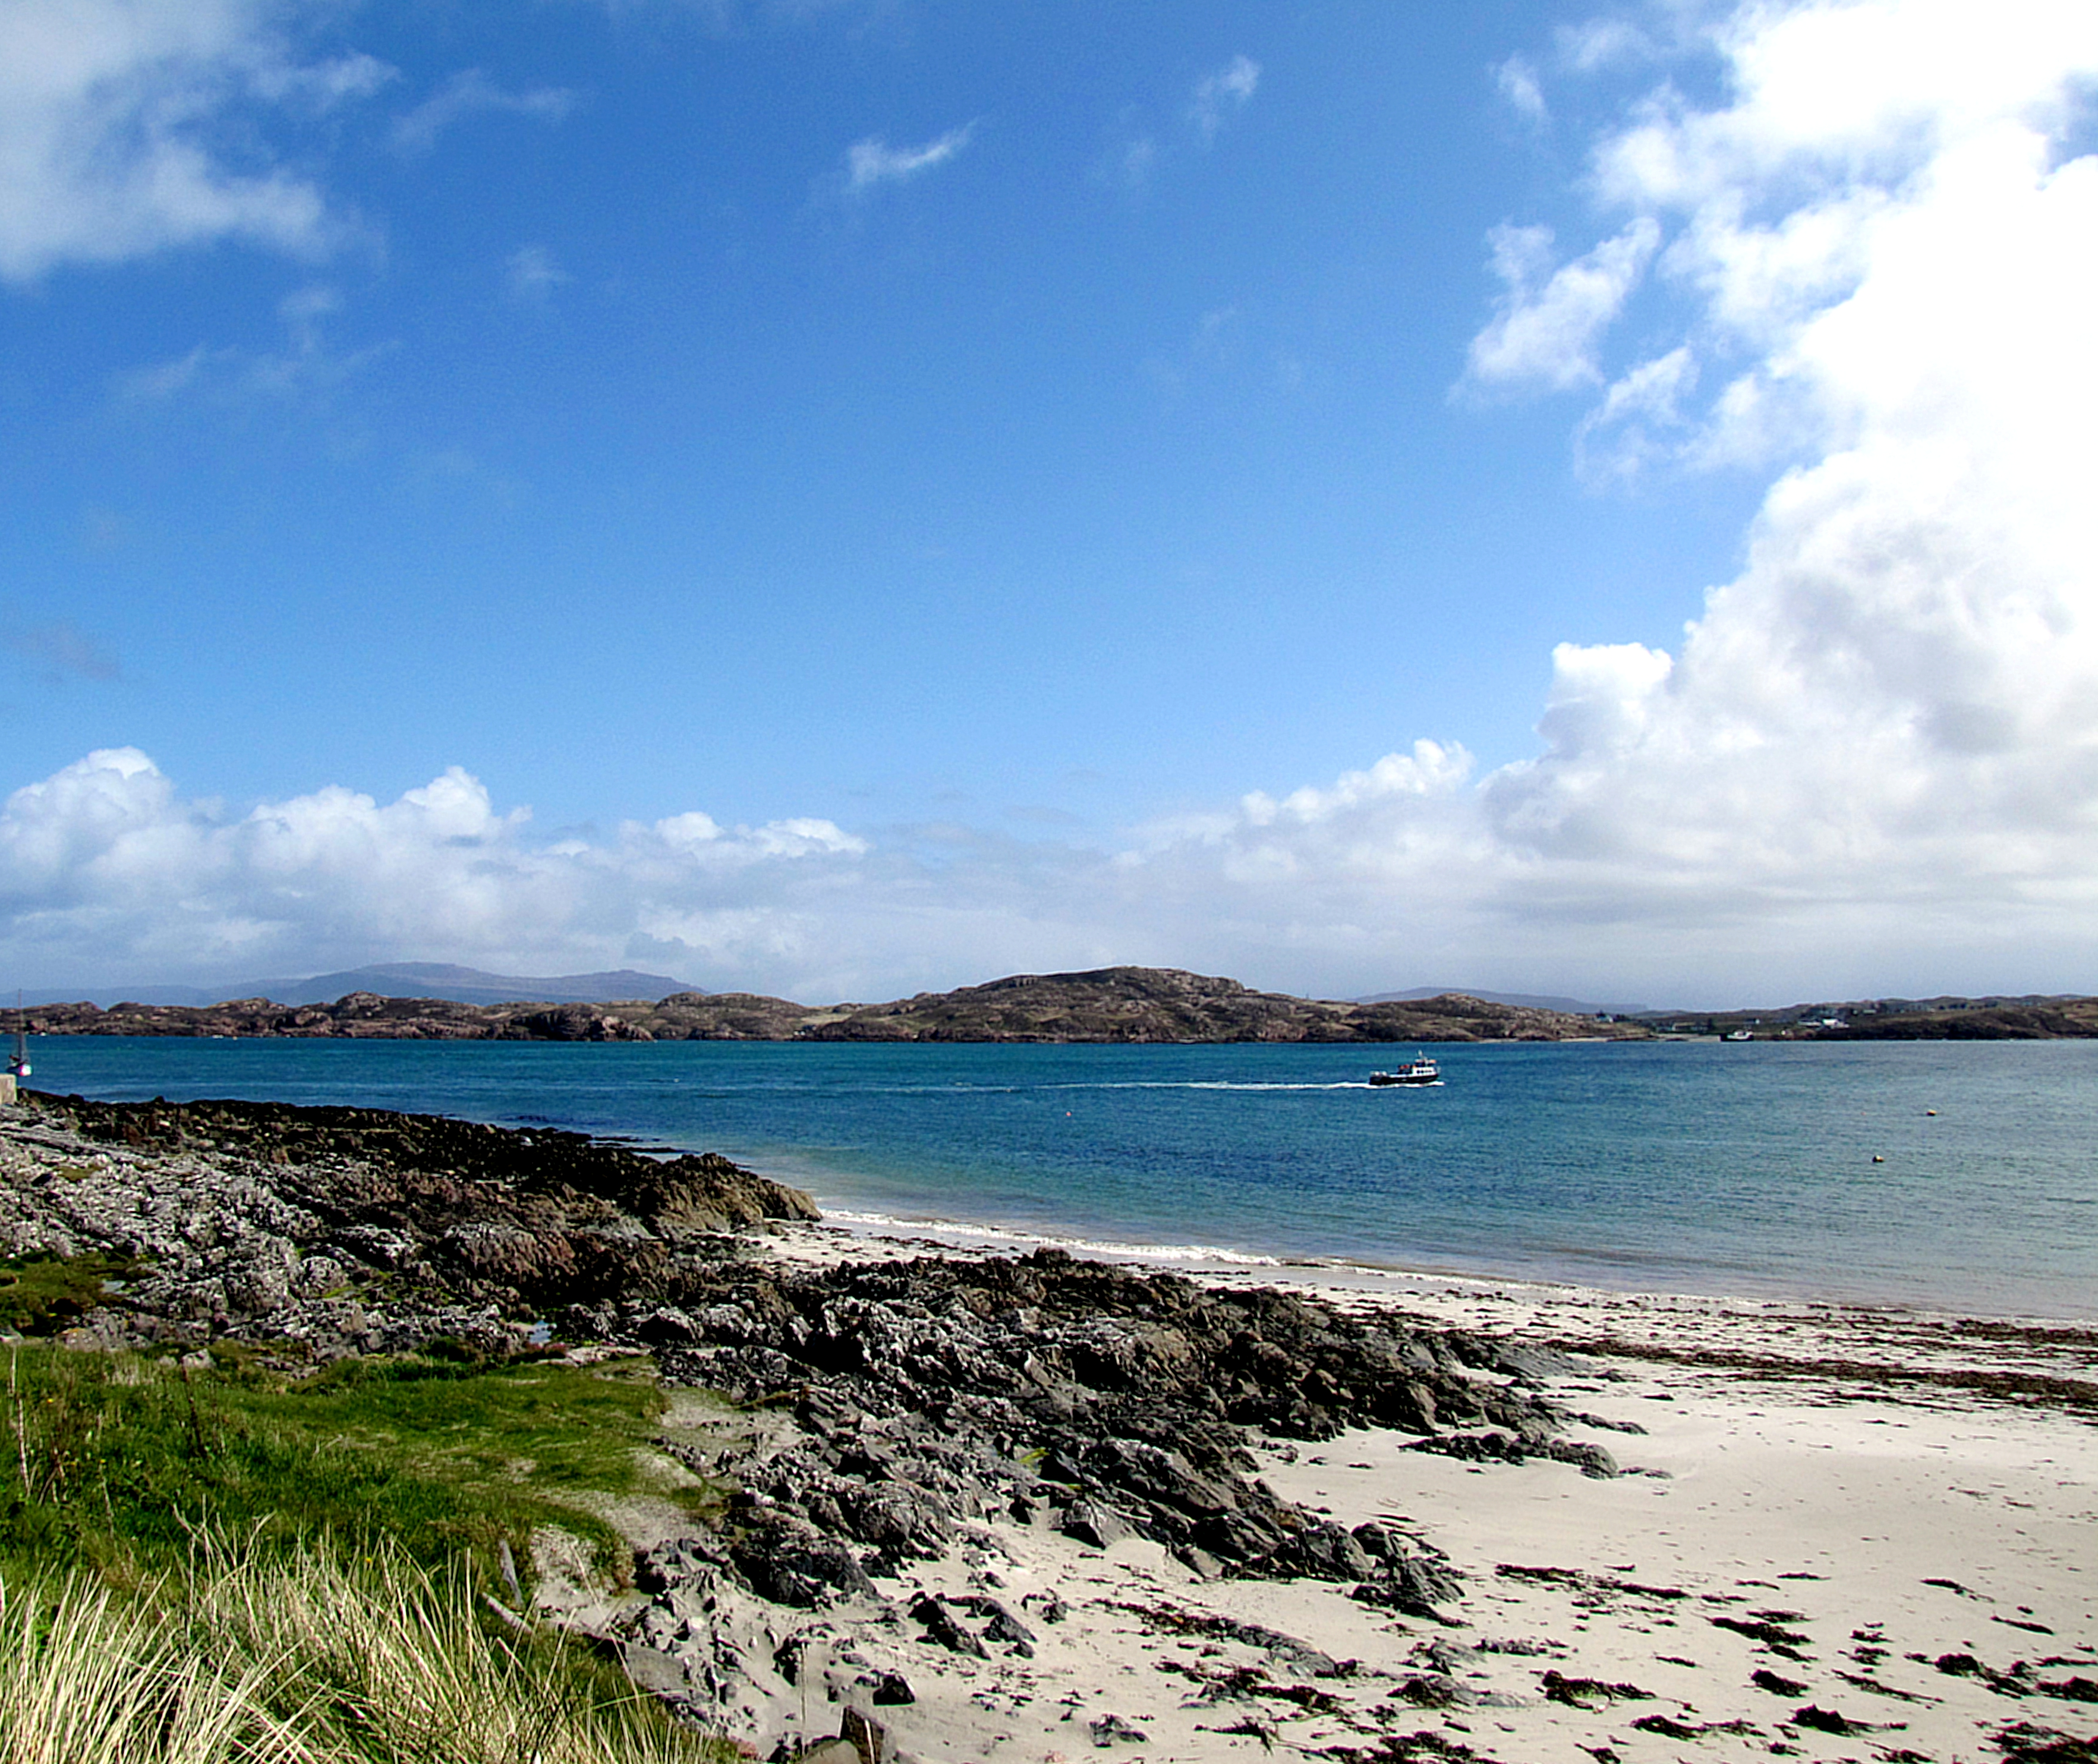 The Iona shore. It looks so nice and clear, but the wind out of the shelter of the island is fierce.